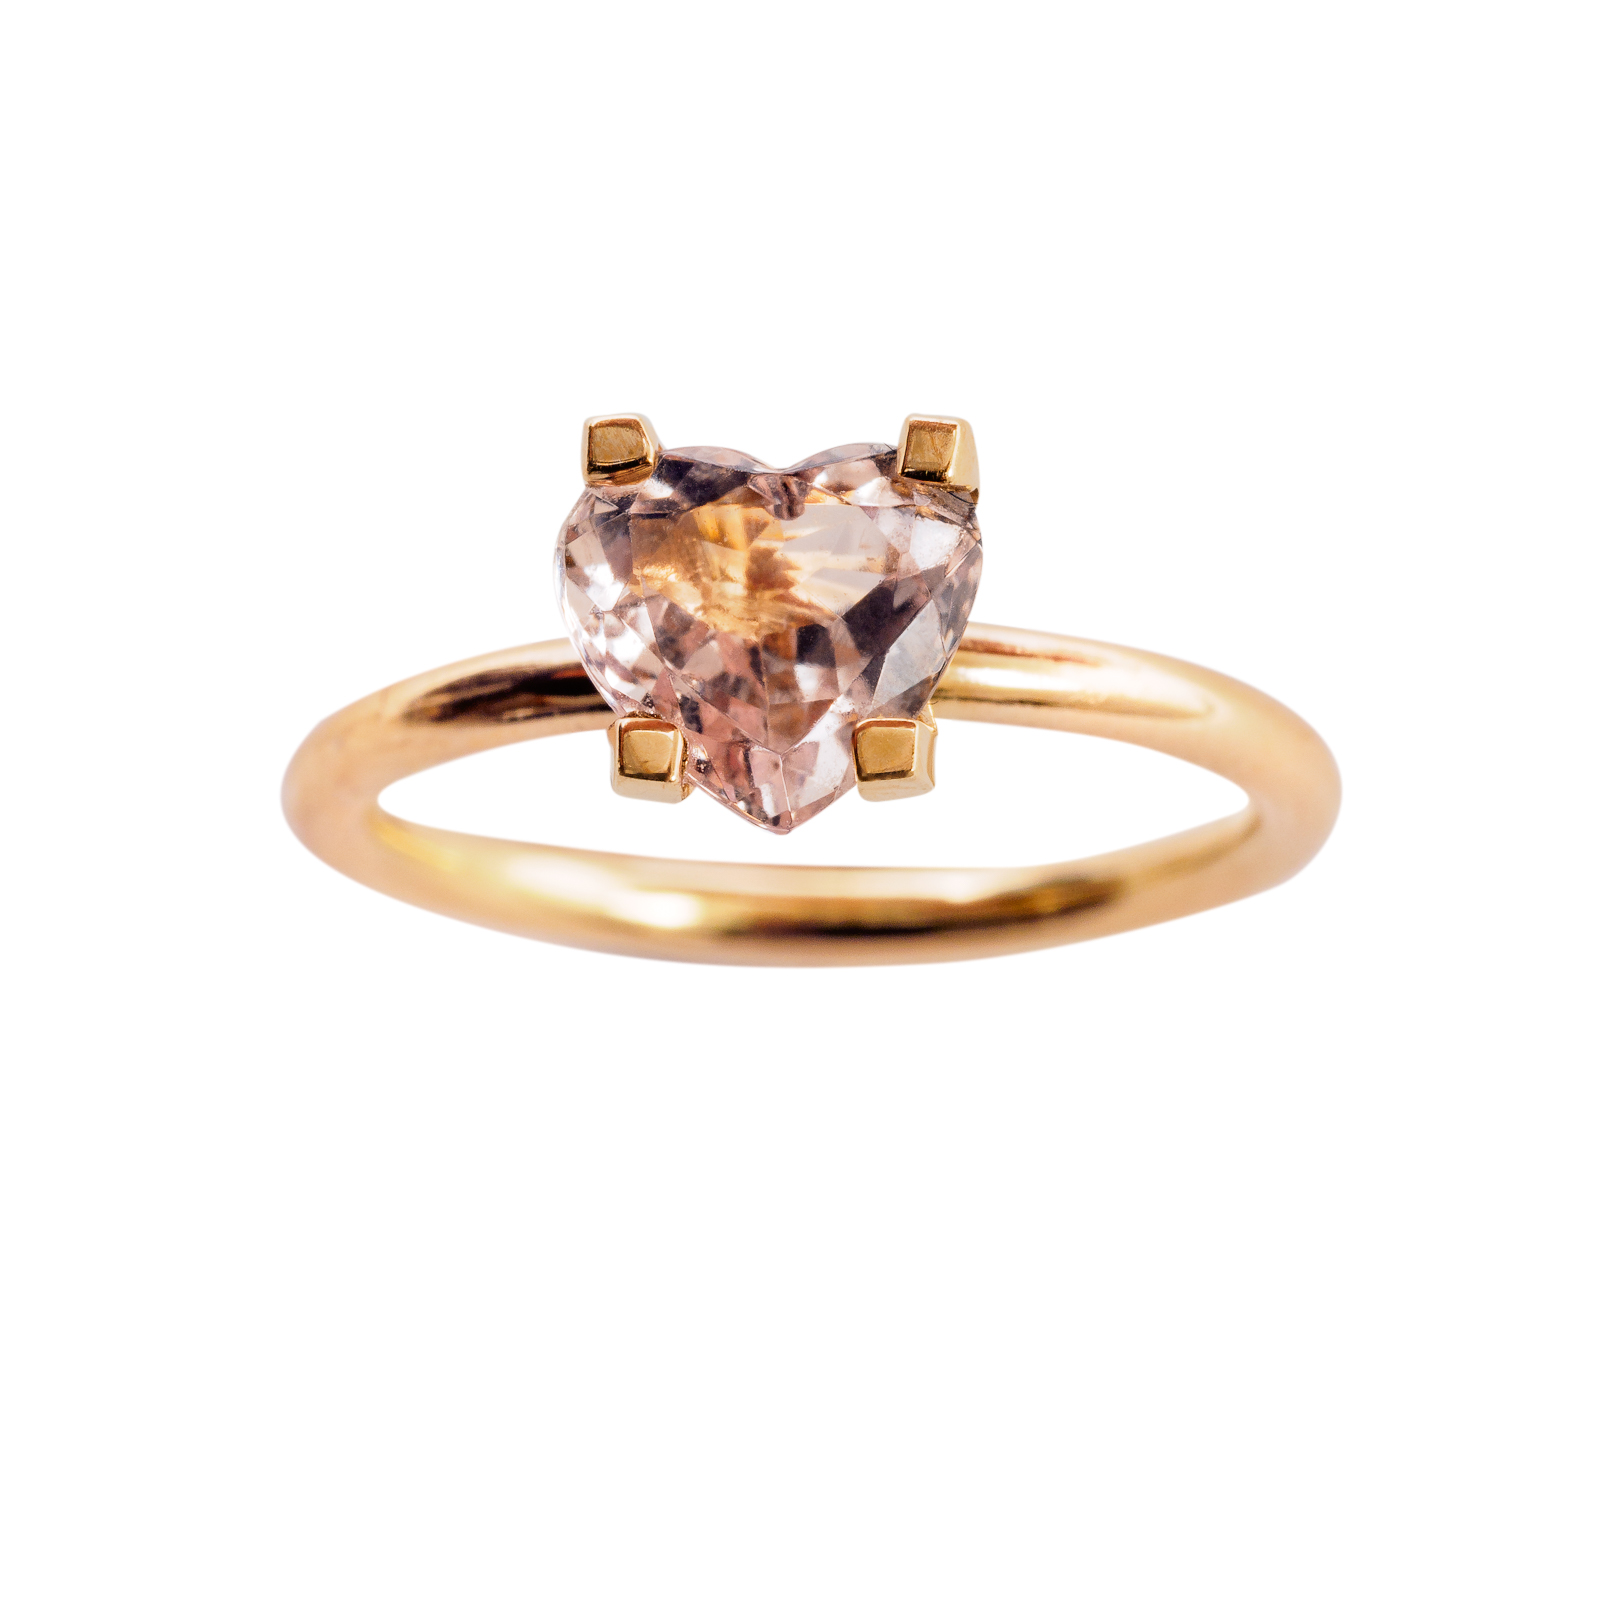 PINKY FINGER LOVE RING 12.000 NOK. 18 kt gold with heart shaped morganite